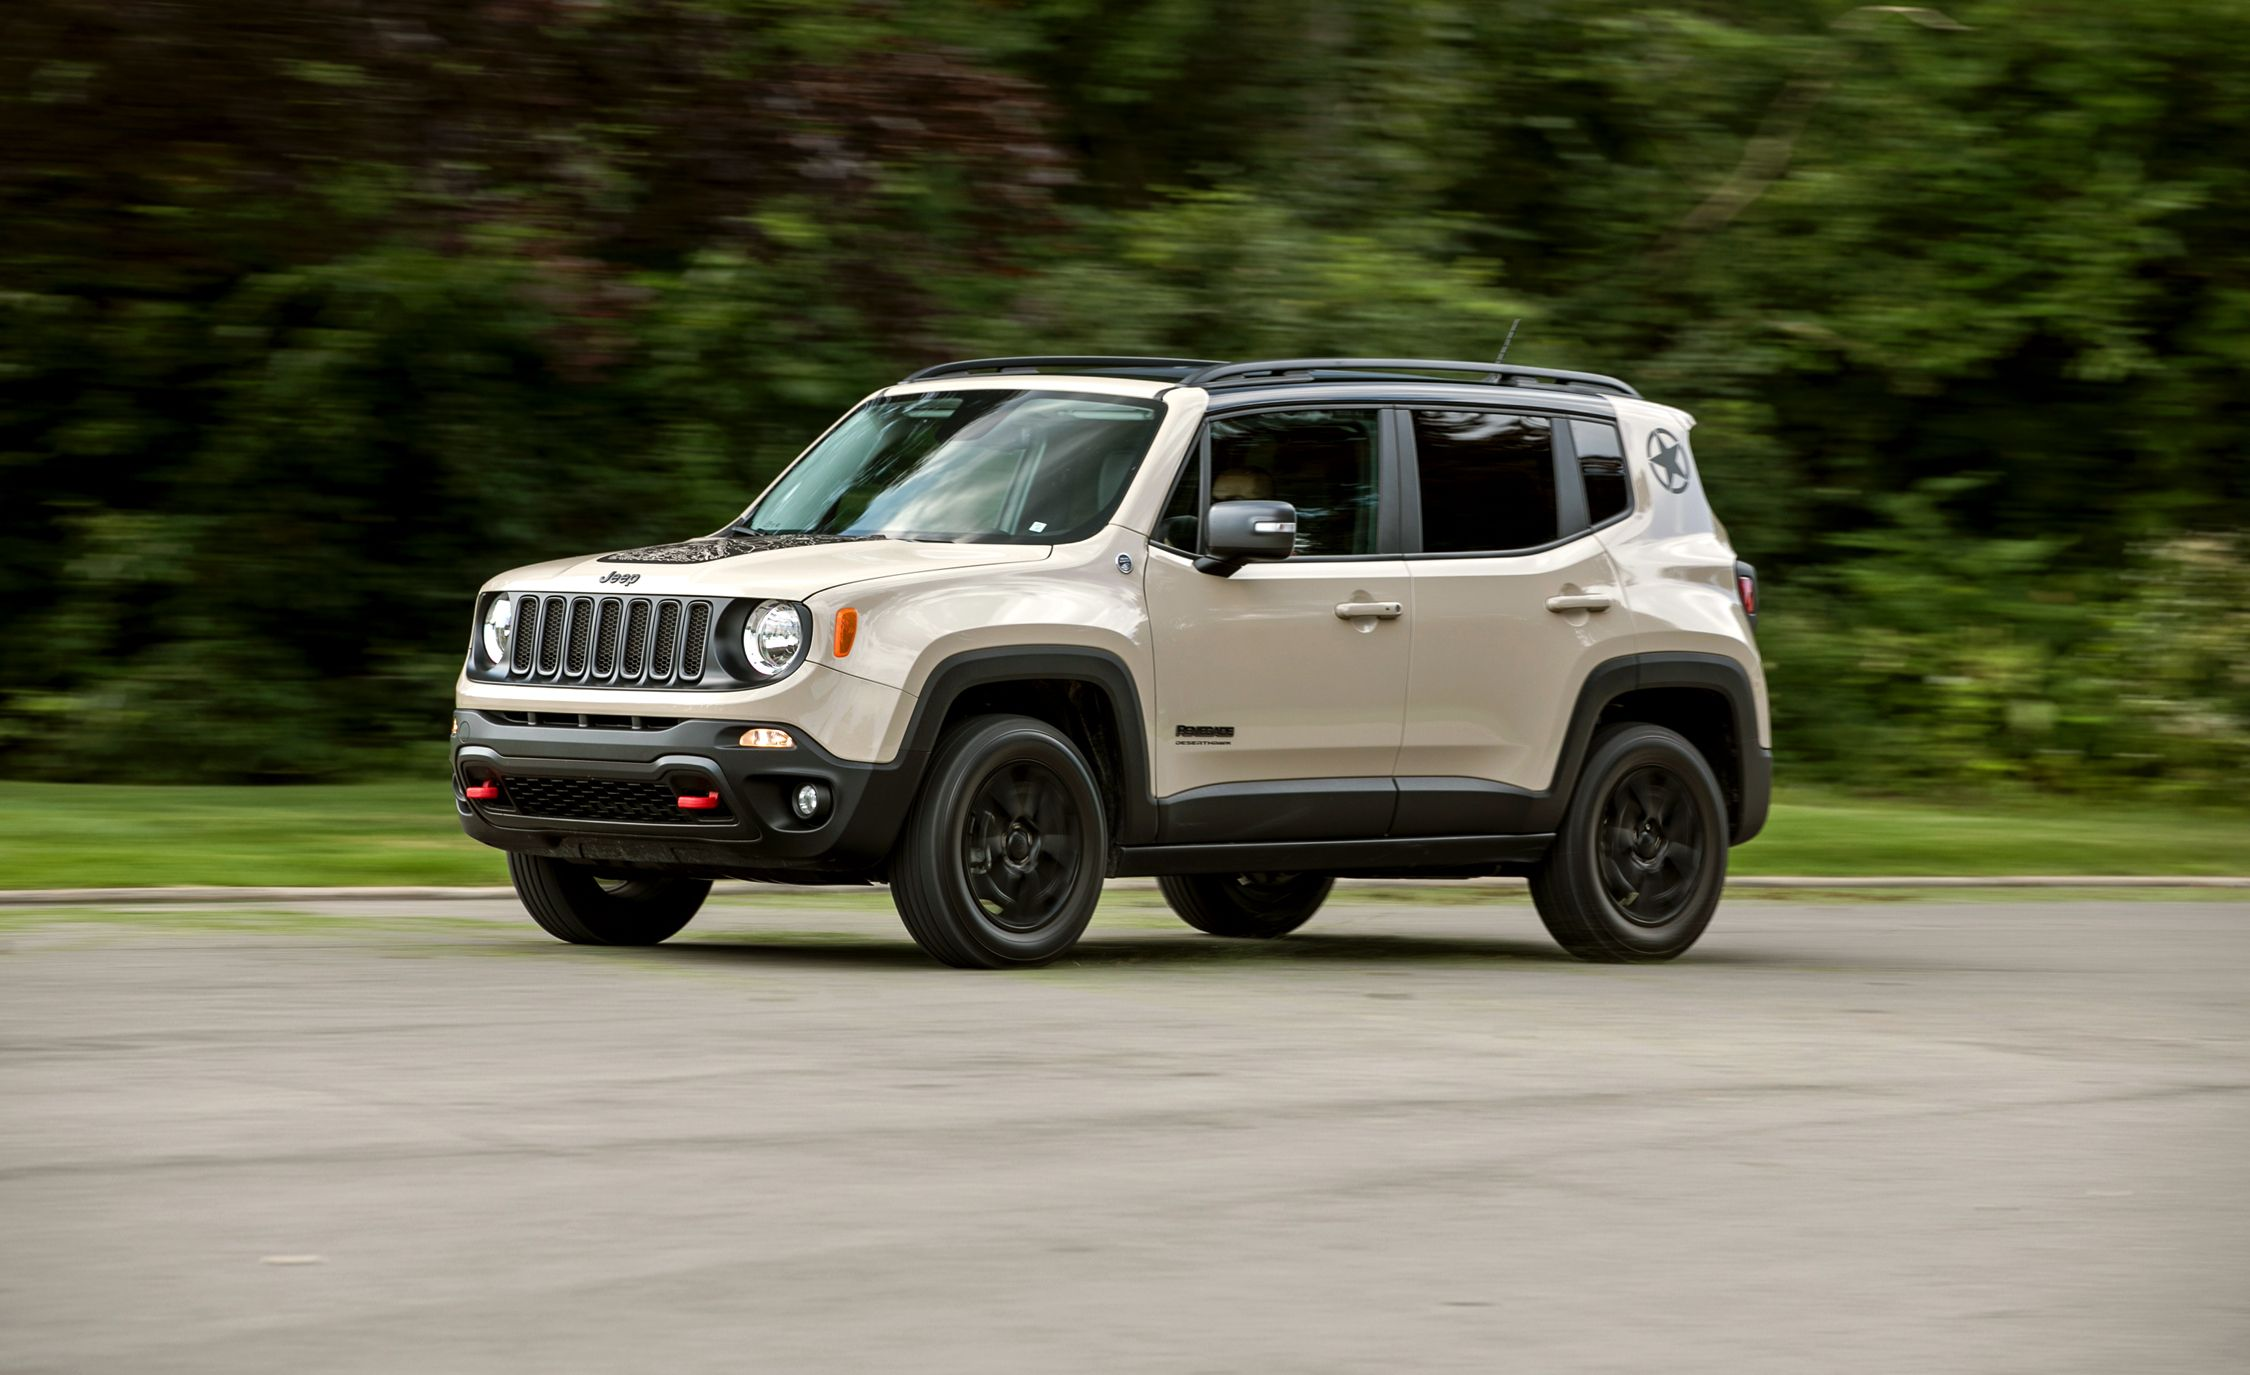 Jeep Build And Price >> Jeep Renegade Reviews | Jeep Renegade Price, Photos, and ...